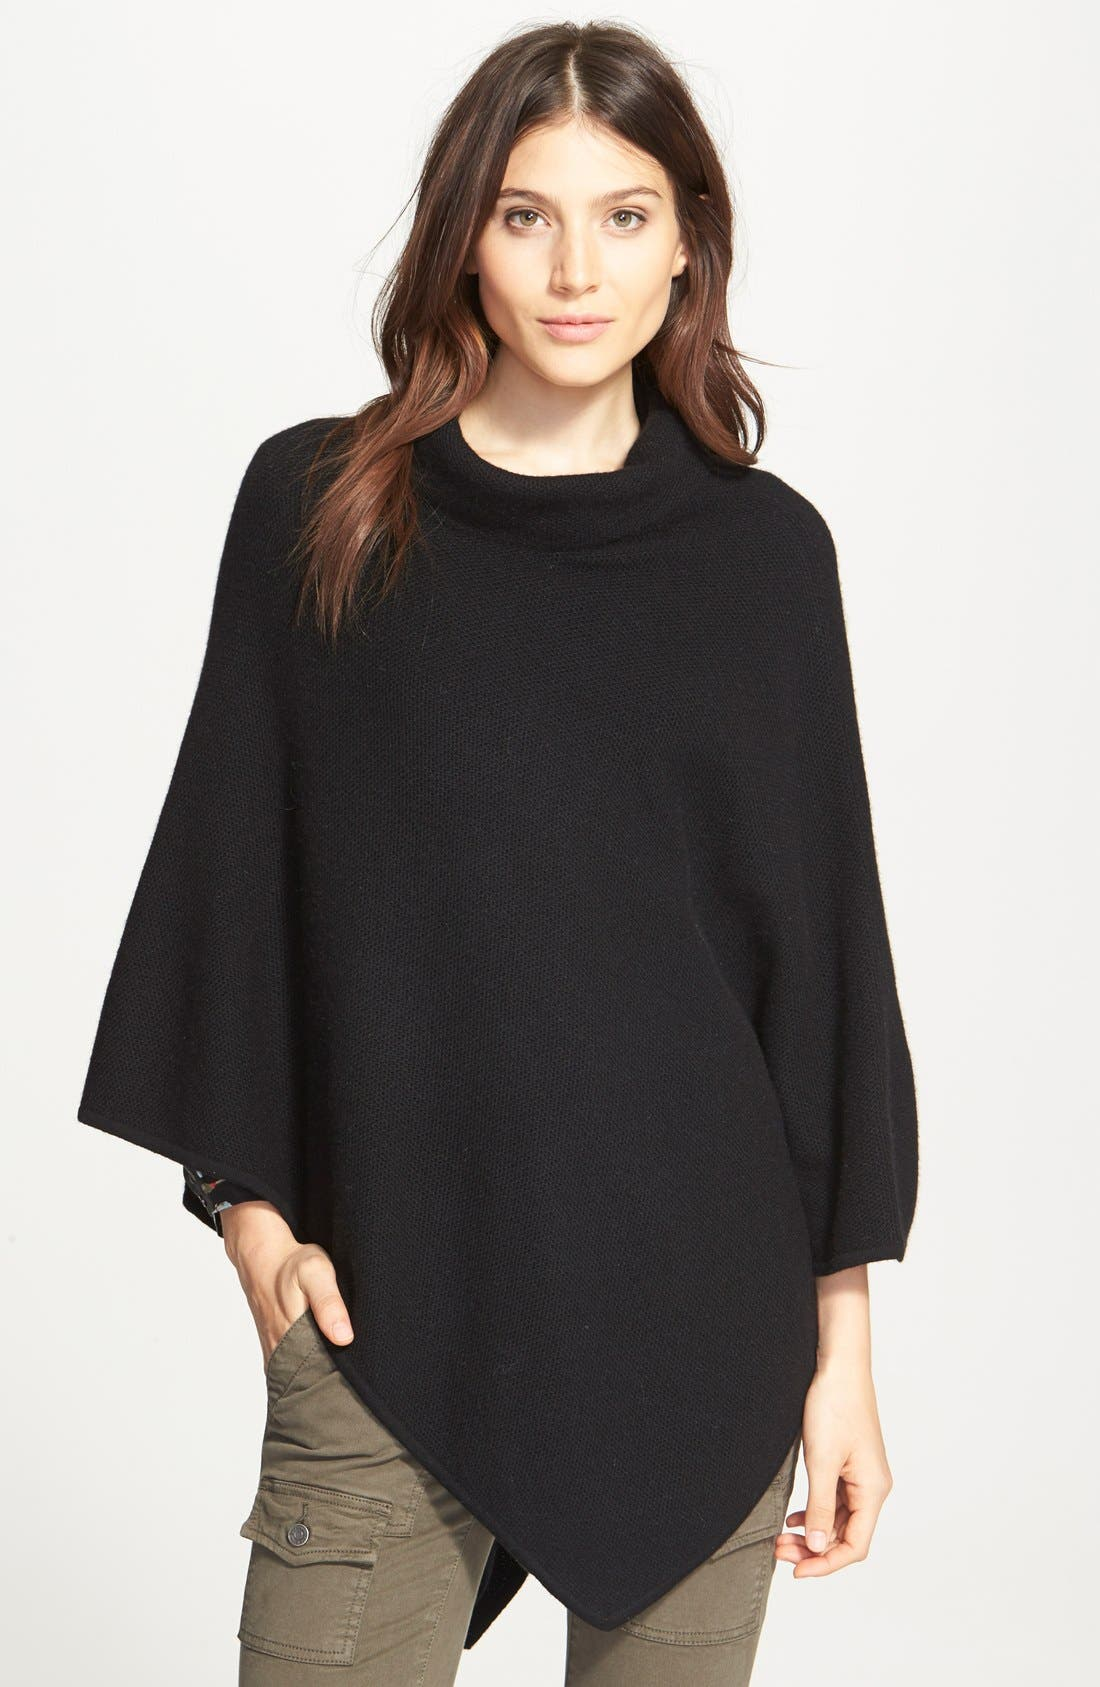 JOIE 'Loysse' Wool & Cashmere Cowl Neck Sweater, Main, color, 002